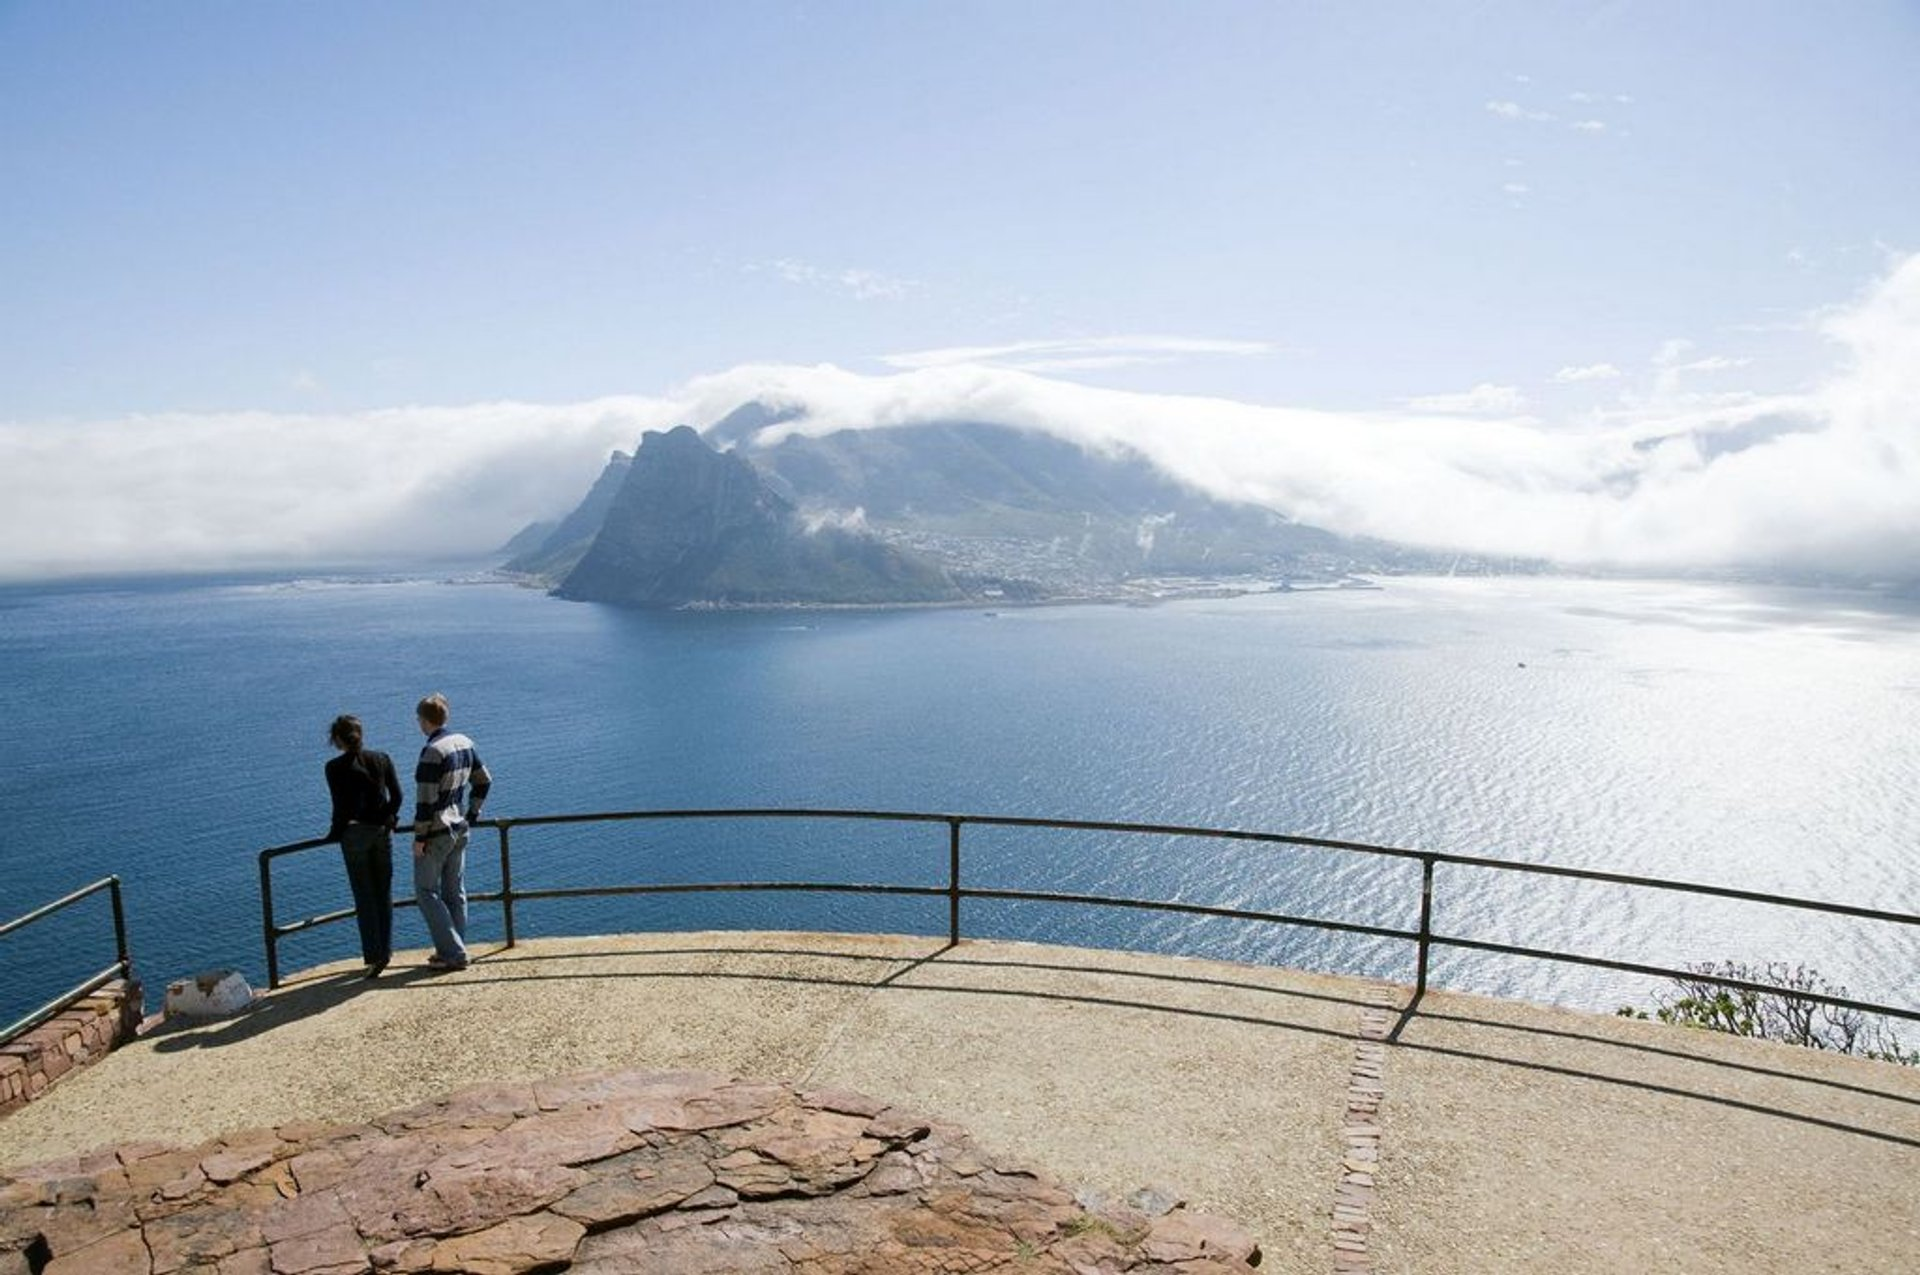 Edge of the world, viewpoint from Chapman's Peak Drive 2020